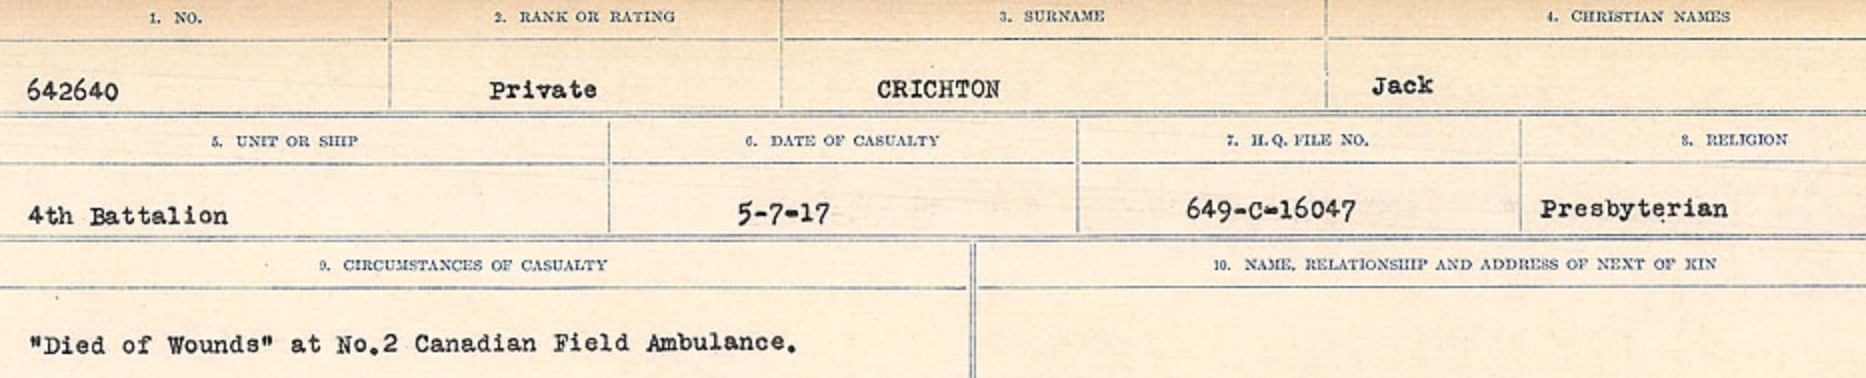 Circumstances of death registers – Source: Library and Archives Canada. CIRCUMSTANCES OF DEATH REGISTERS, FIRST WORLD WAR Surnames: CRABB TO CROSSLAND Microform Sequence 24; Volume Number 31829_B016733. Reference RG150, 1992-93/314, 168. Page 511 of 788.